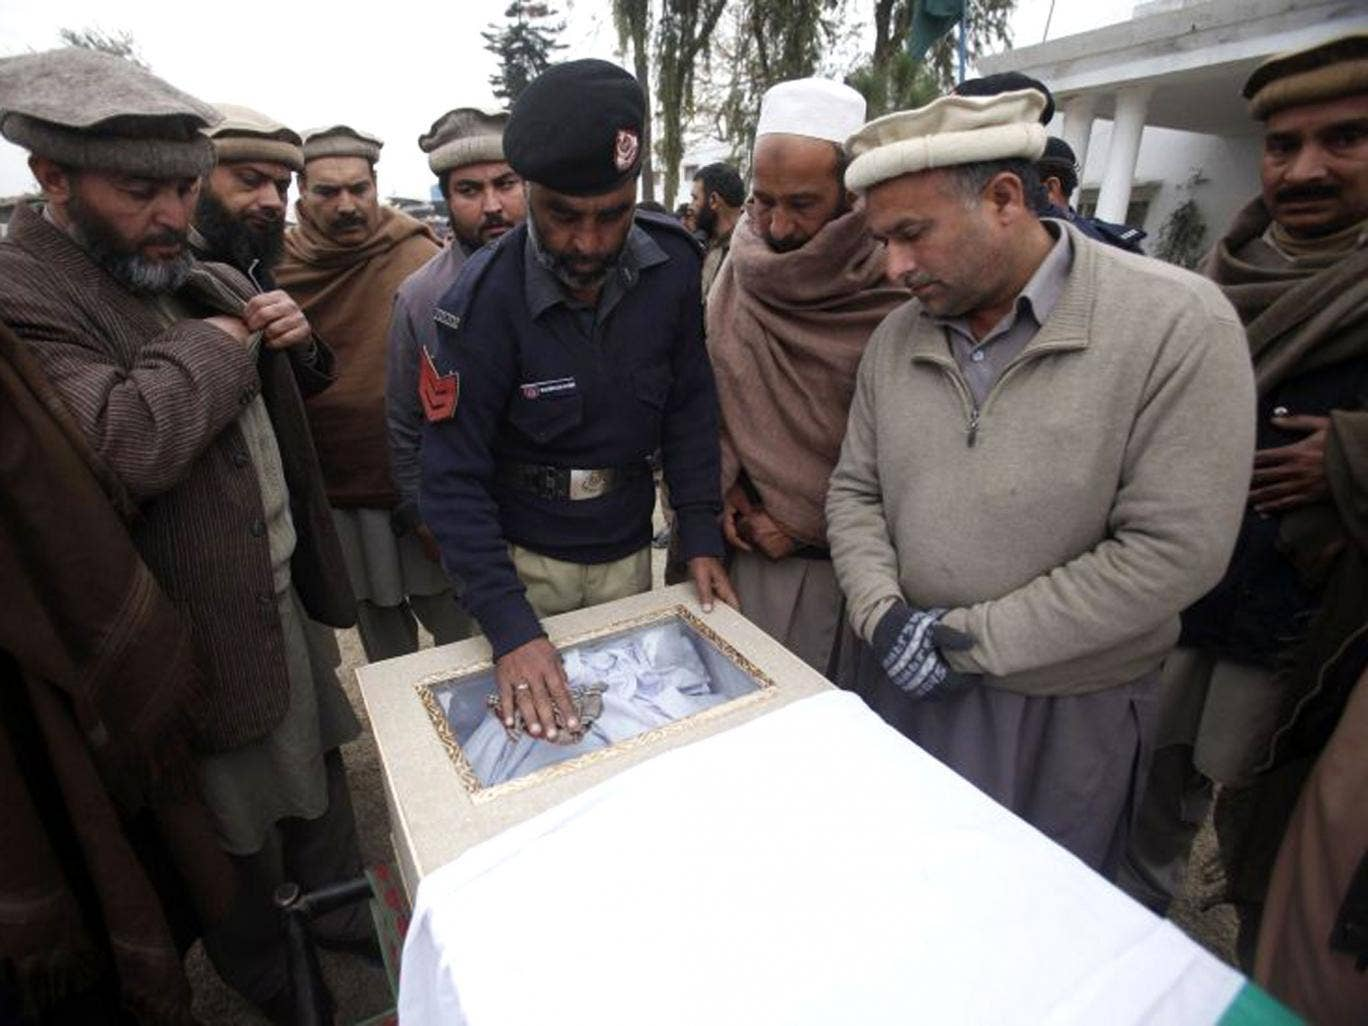 A policeman and relatives gather around the flag-draped casket of a policeman, who was killed in a bomb attack, during a funeral ceremony at the Police Line, or the police's main office, in Charsadda, on the outskirts of Peshawar